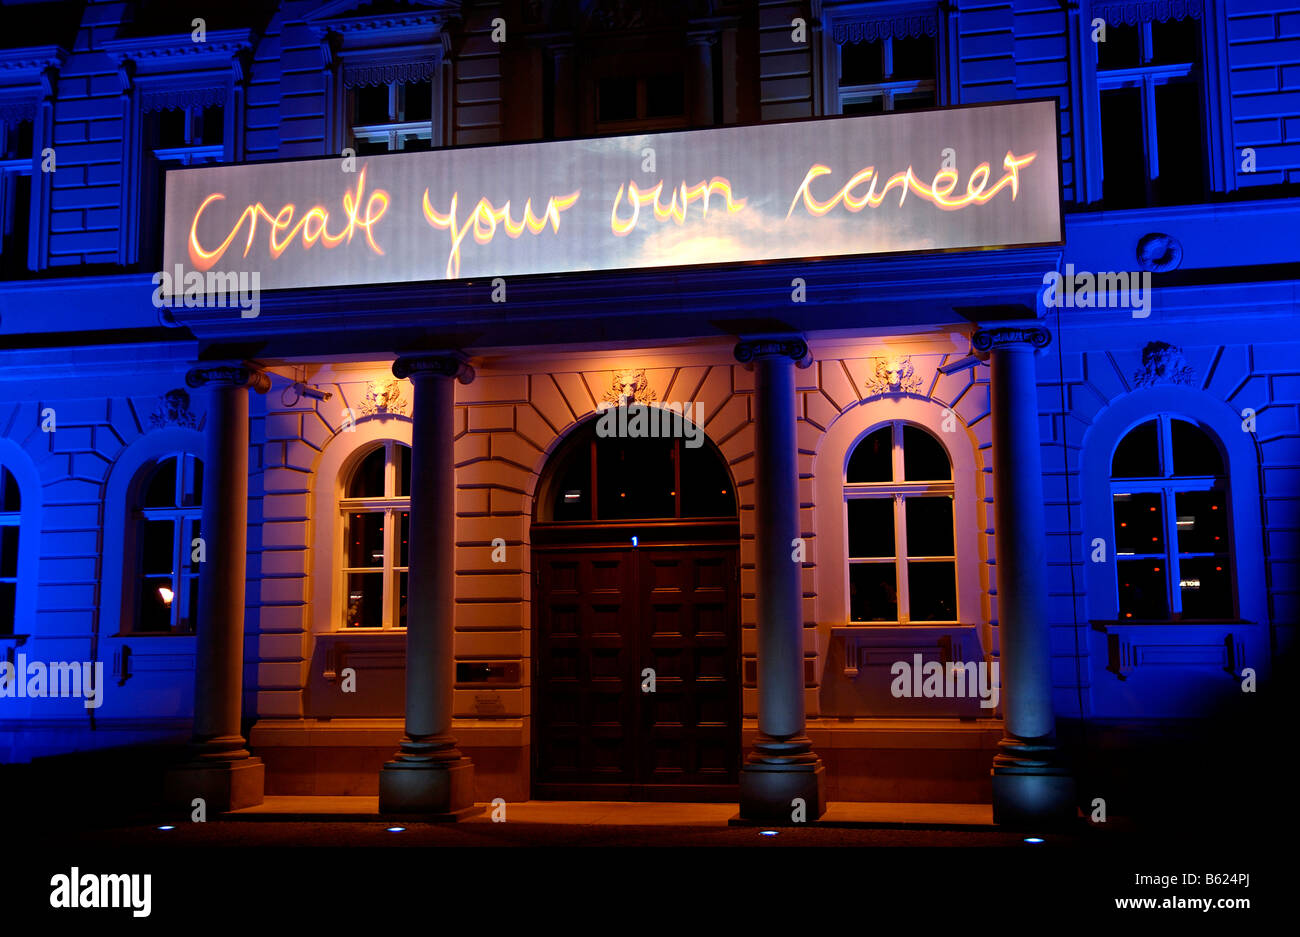 Sign, Create Your Own Career, night lit advertising on a building facade in Berlin, Germany, Europe - Stock Image